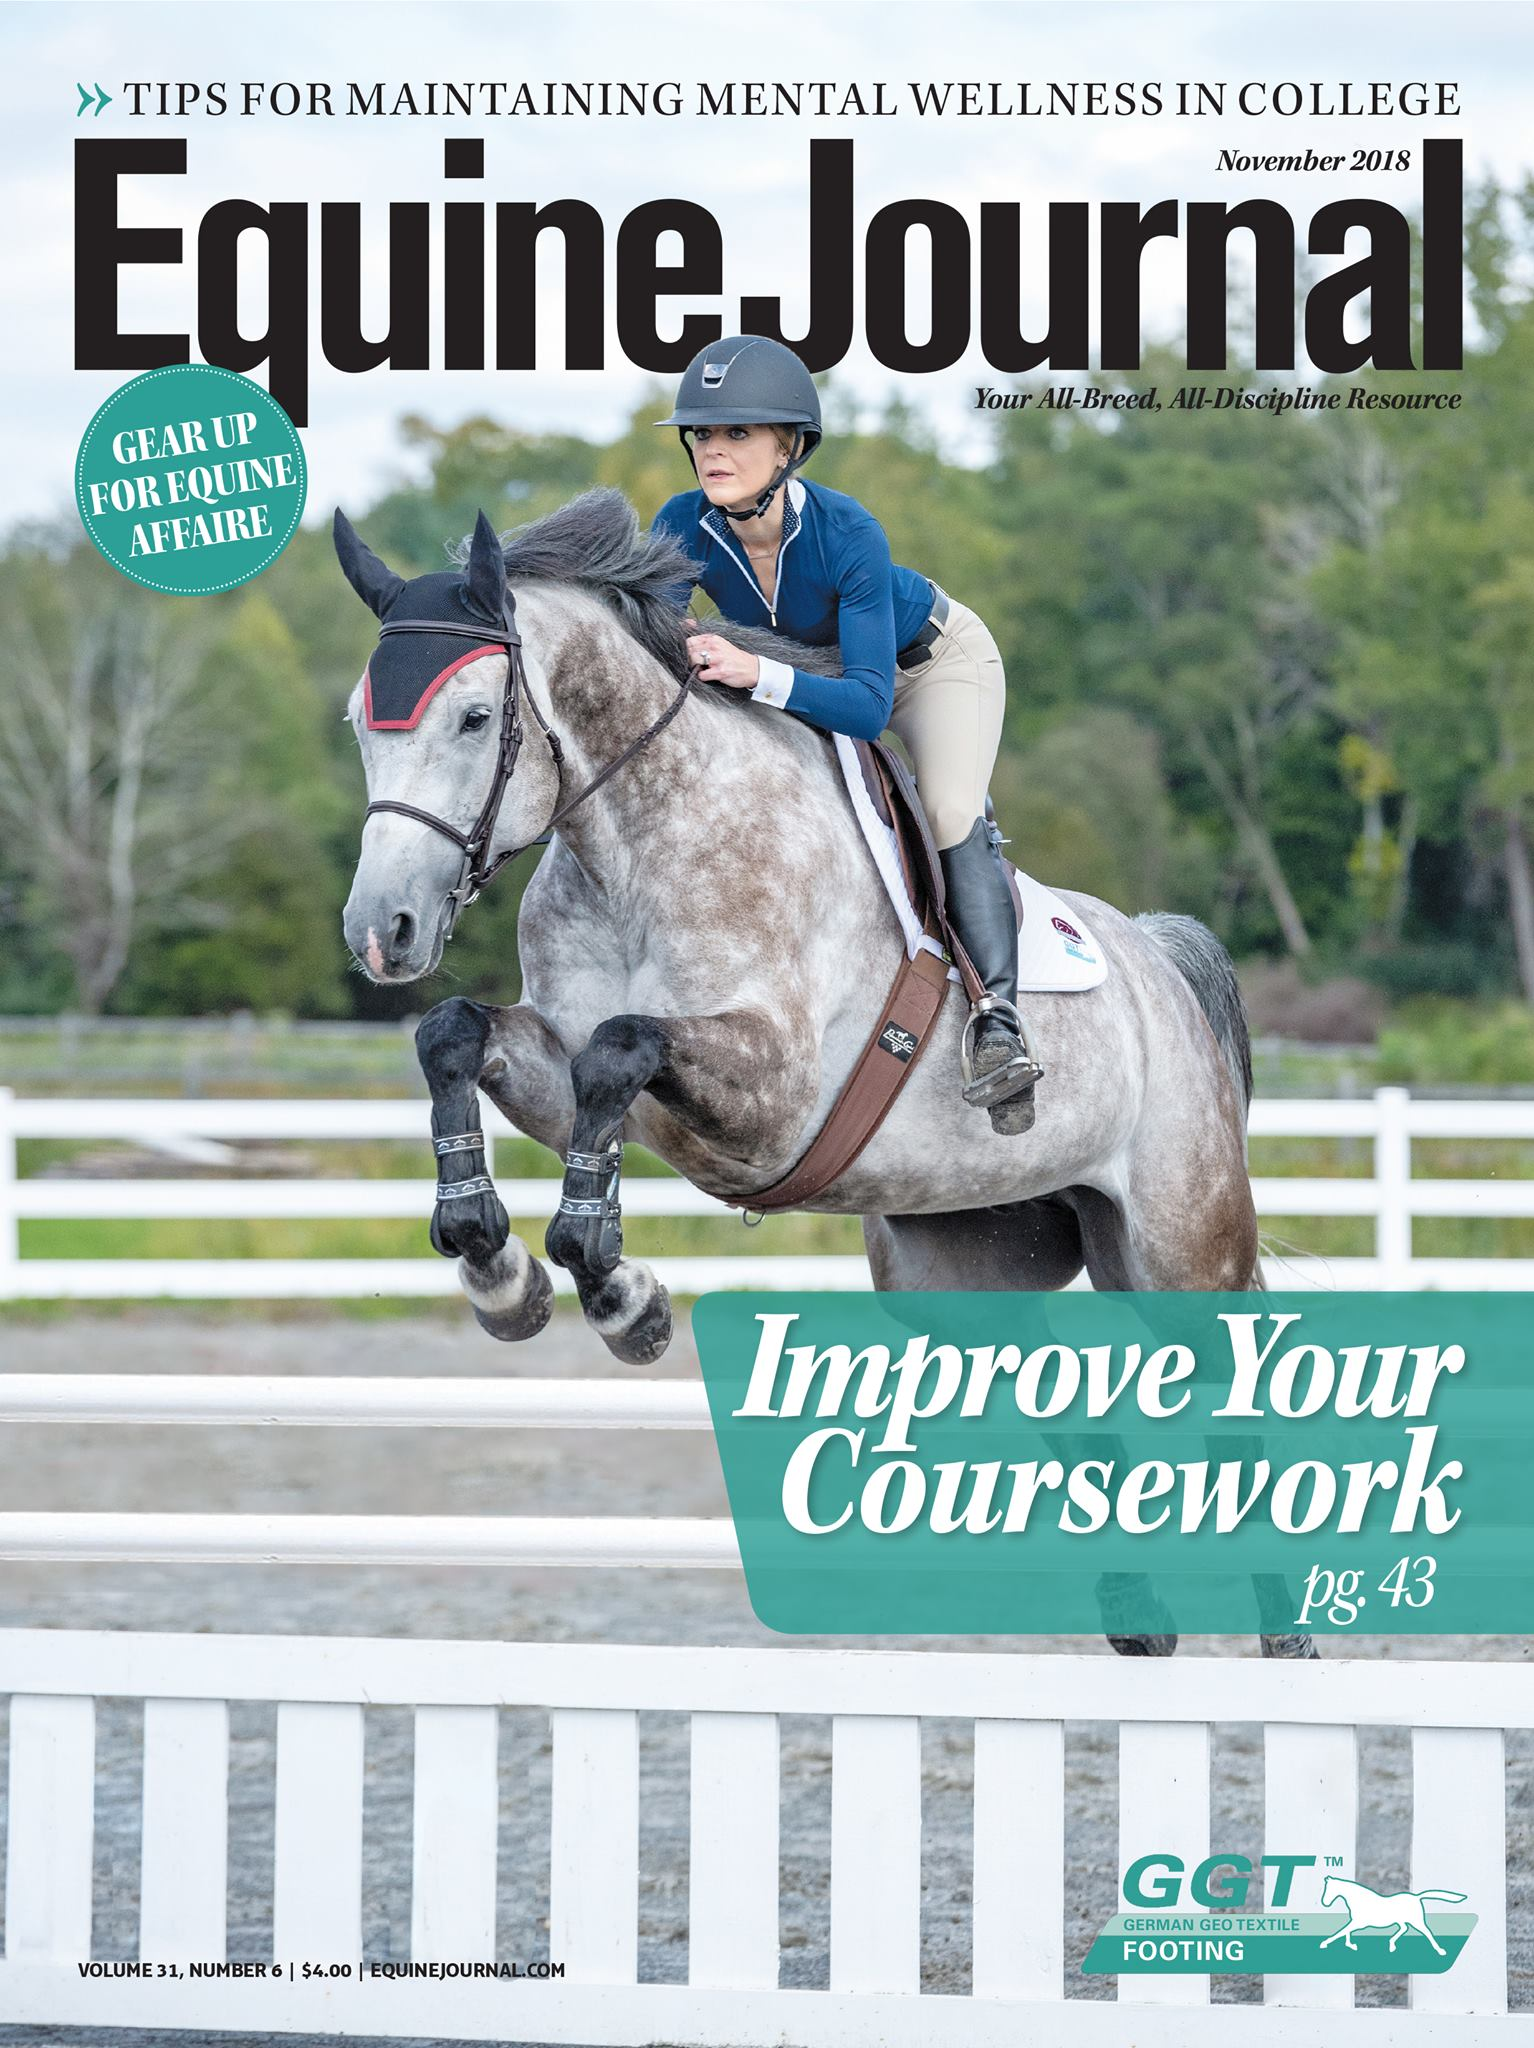 Equine journal November cover